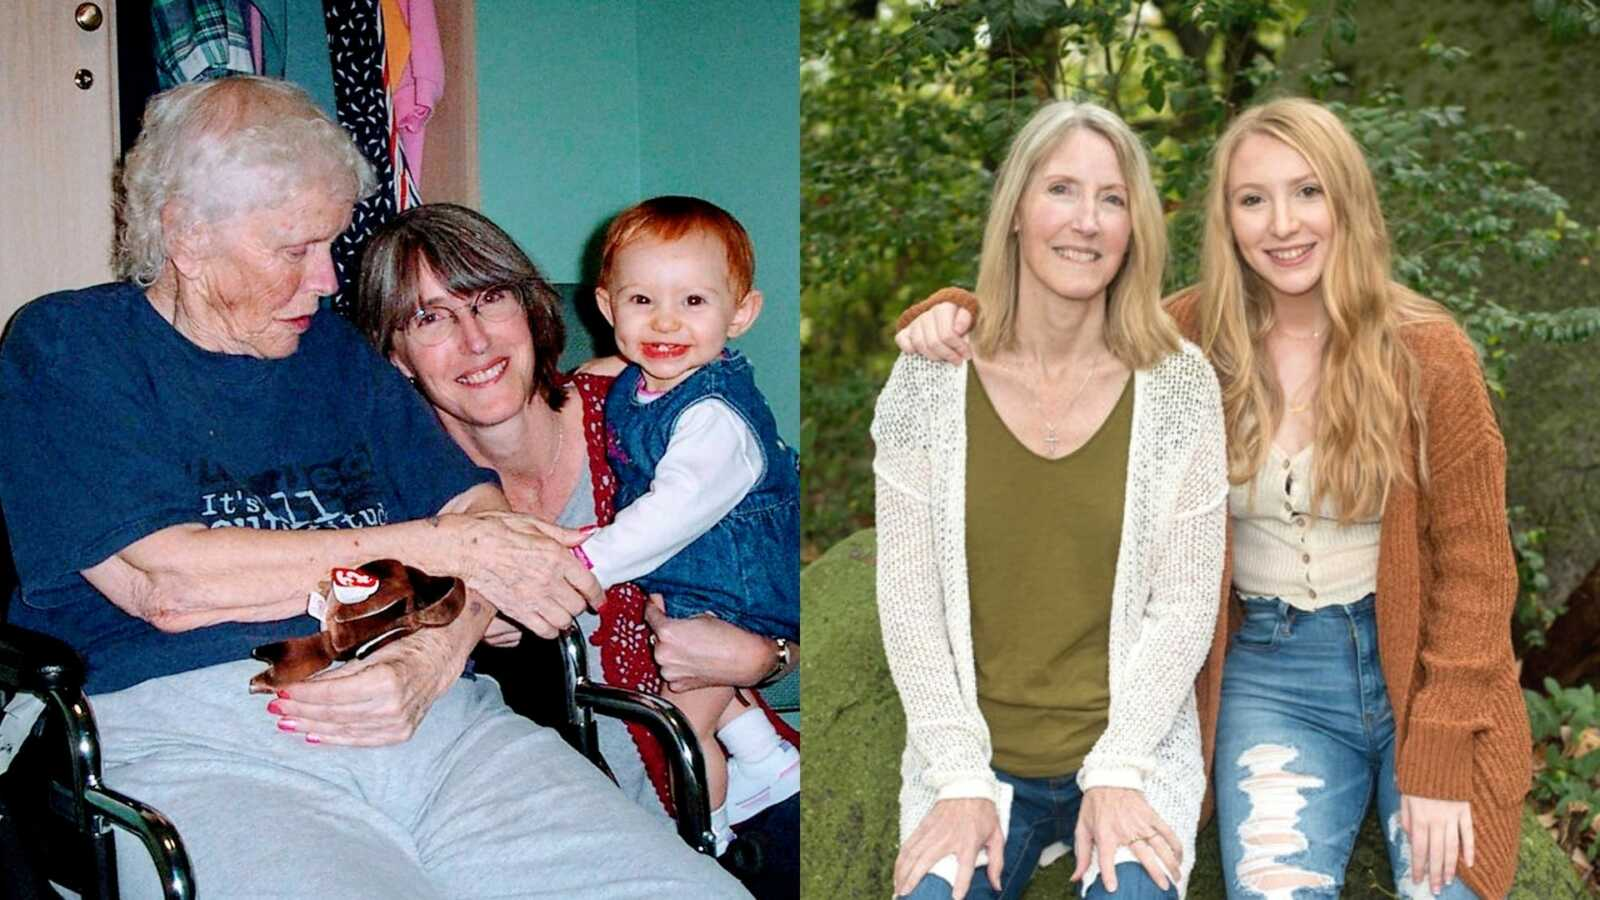 Woman with mother and daughter and mother with daughter who has celiac